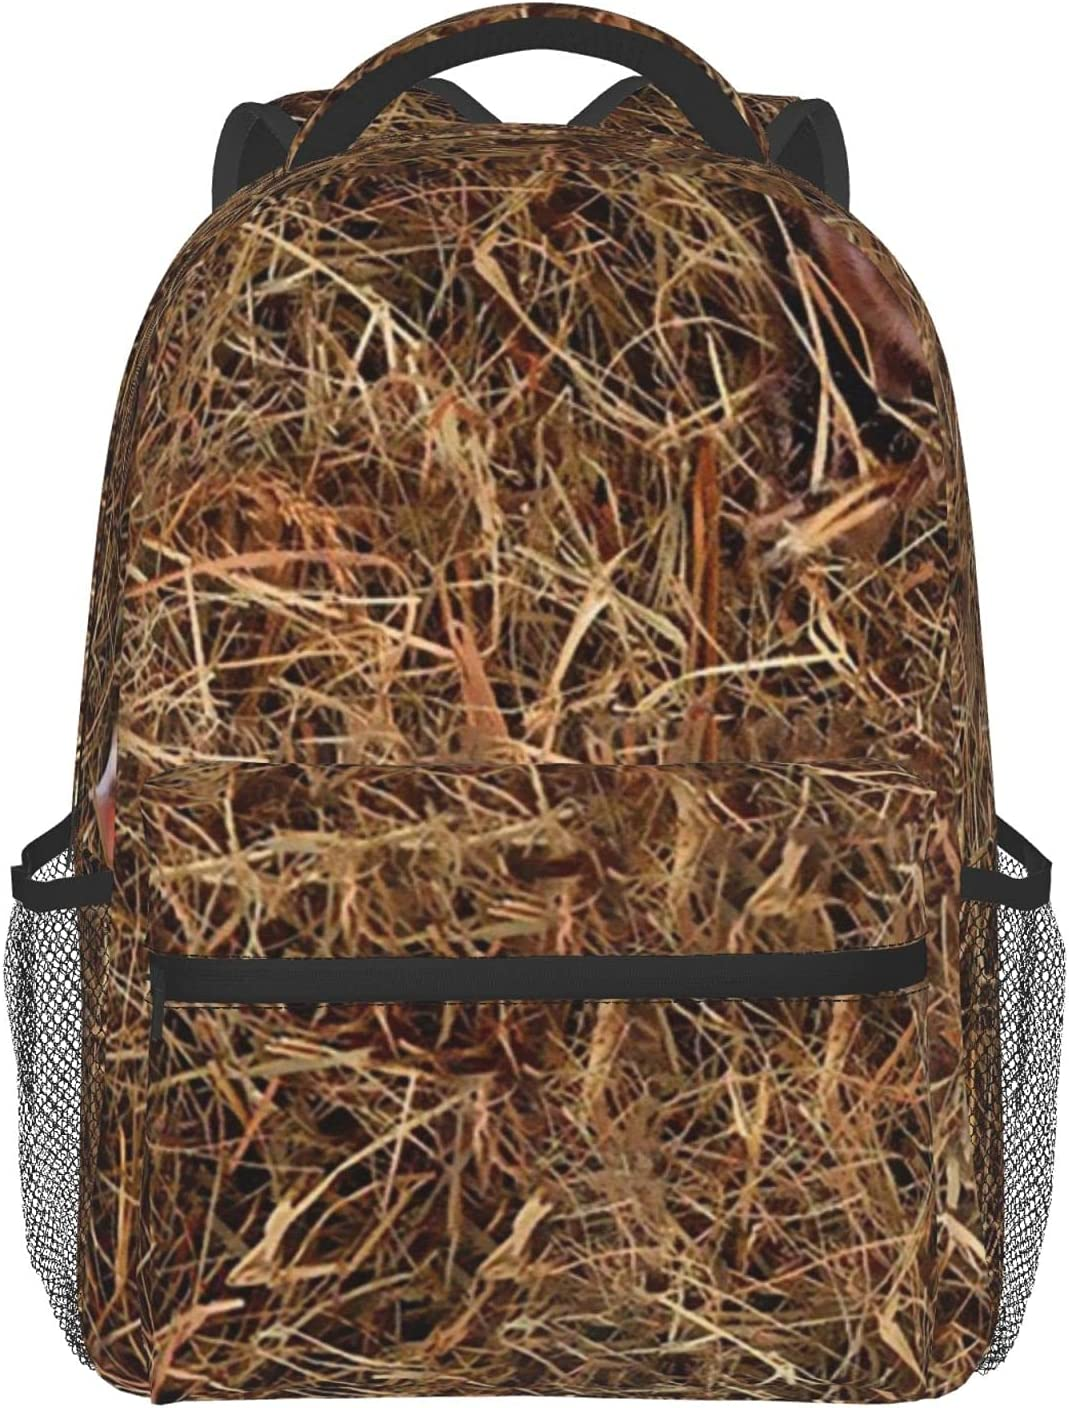 Two pigs in a Max 44% OFF haystack Full Athl Print polyester 100% Schoolbag Soldering